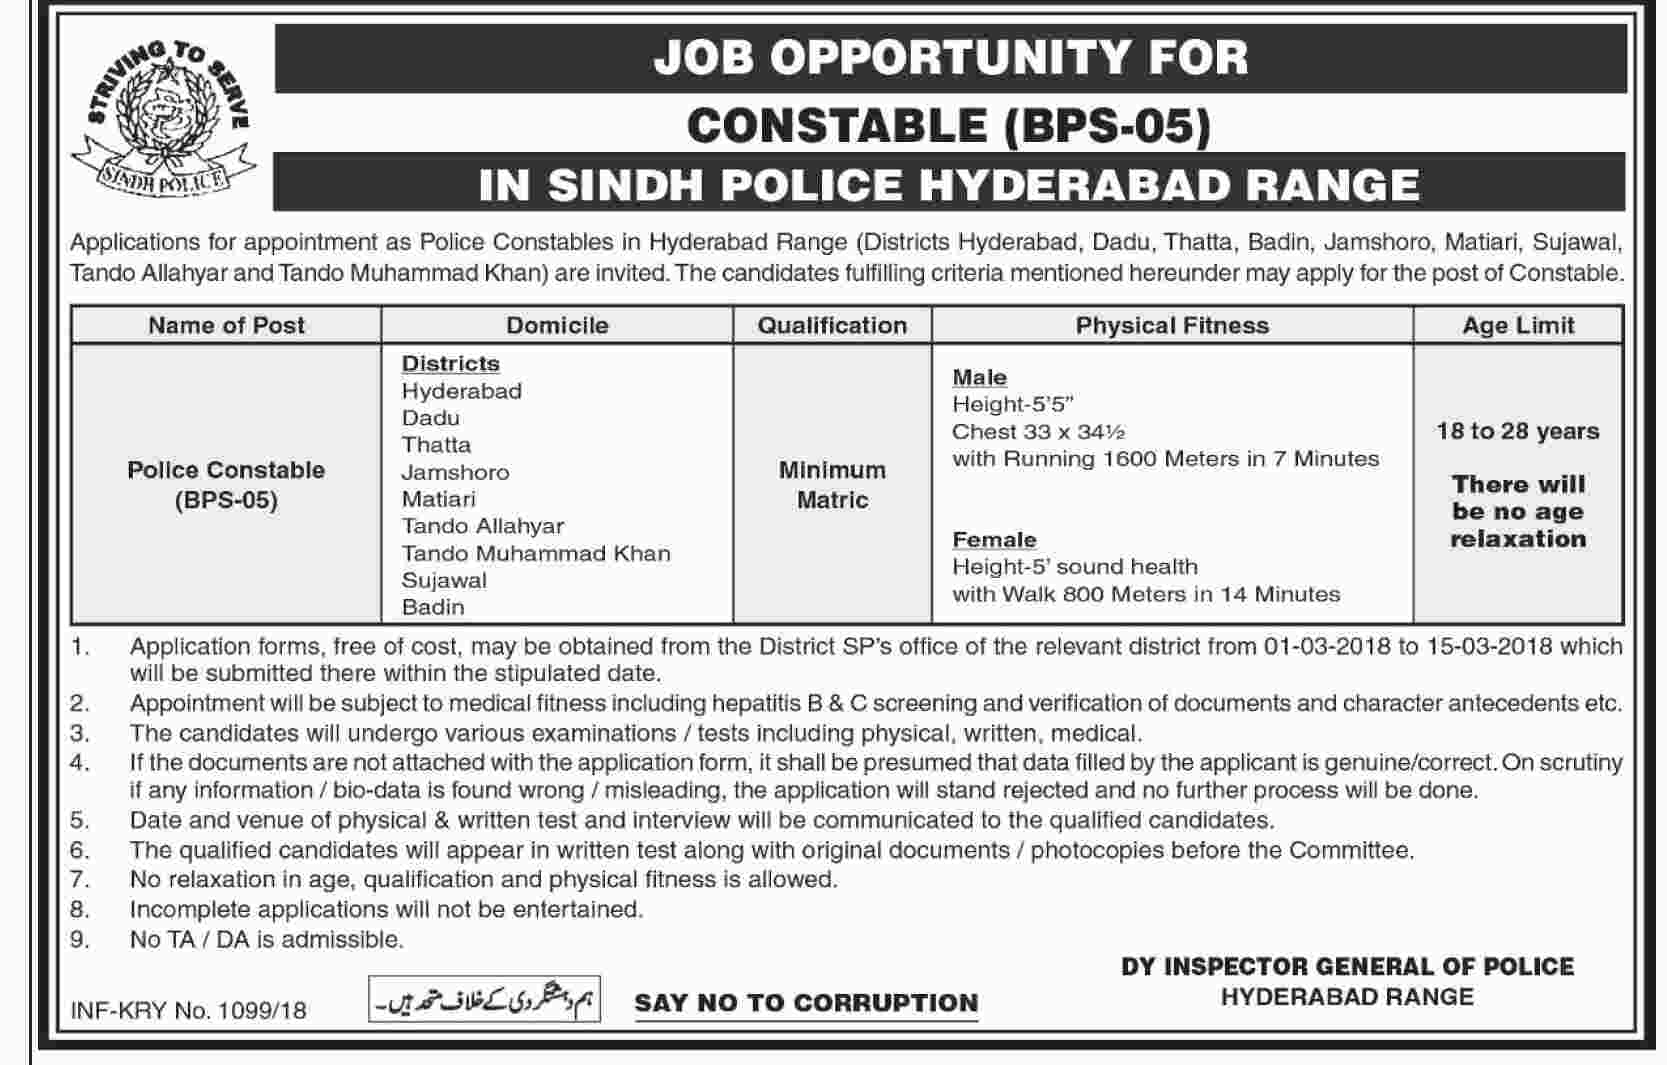 Sindh Police Hyderabad Range Jobs 2018 Constable Application Form Test Date